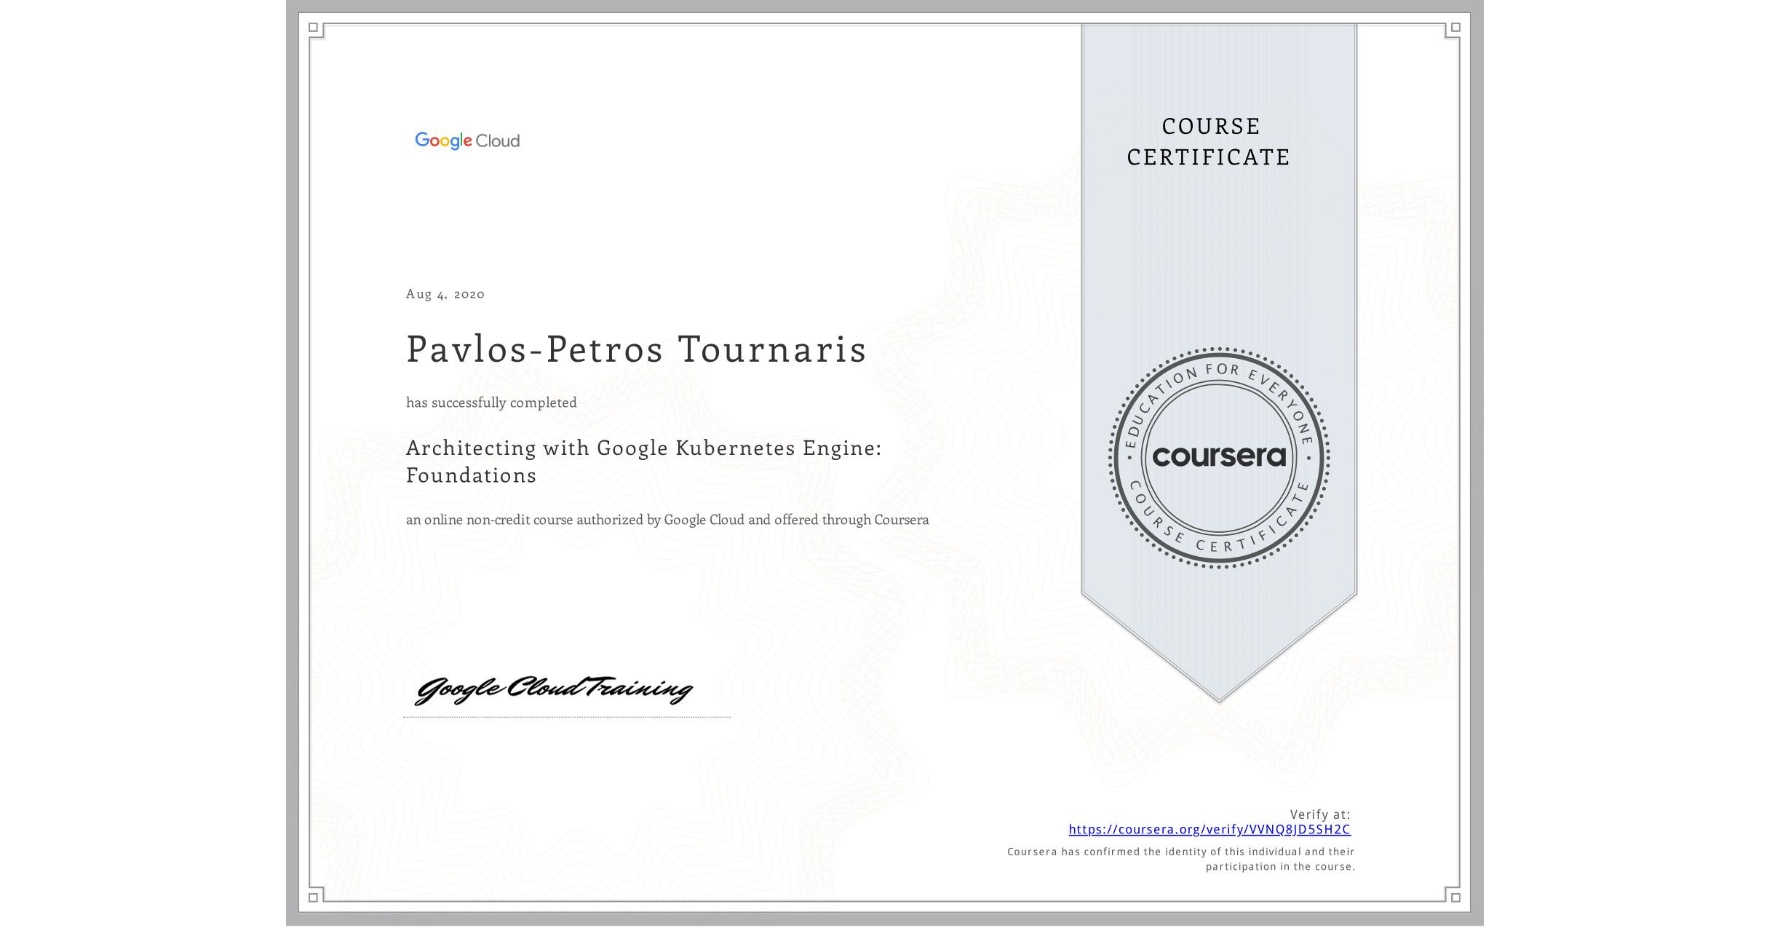 View certificate for Pavlos-Petros Tournaris, Architecting with Google Kubernetes Engine: Foundations, an online non-credit course authorized by Google Cloud and offered through Coursera